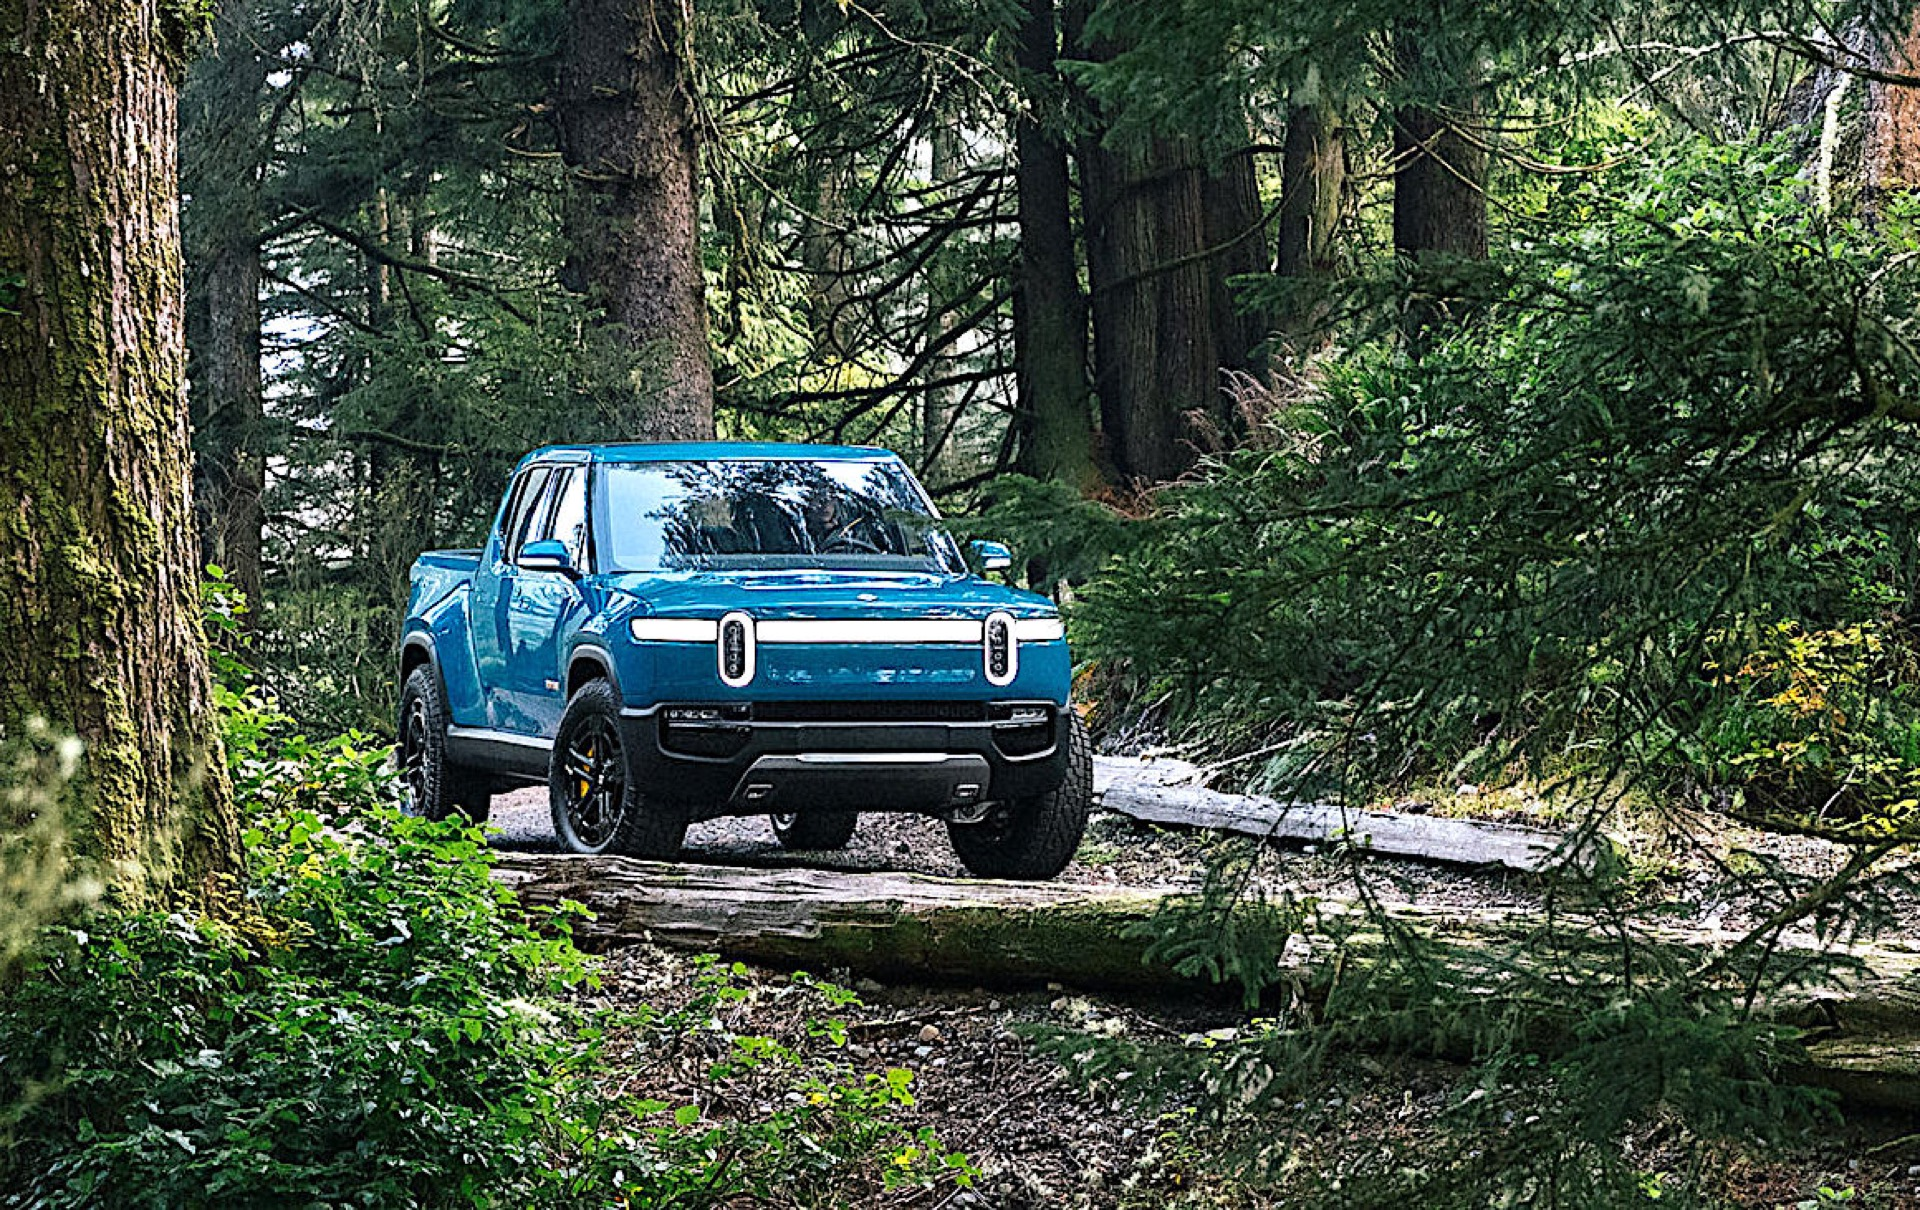 Rivian R1T electric pickup: More details about towing, gear tunnel, app-controlled tailgate